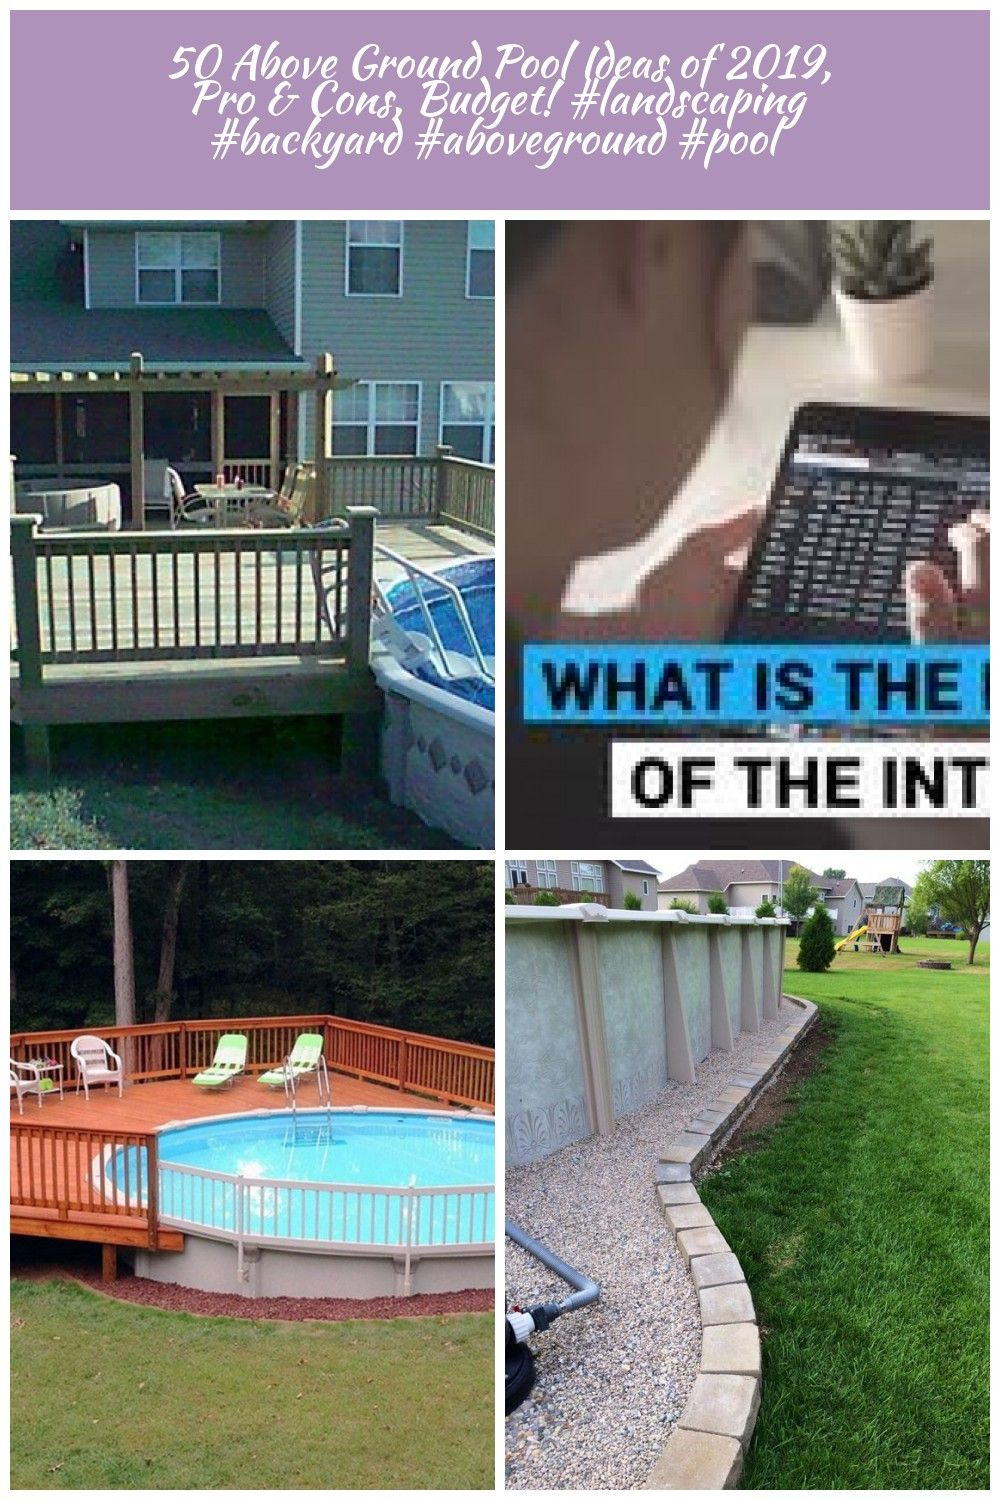 50 Above Ground Pool Ideas of 2019 Pro  Cons Budget pool Deck 50 Above Ground Pool Ideas of 2019 Pro  Cons Budget